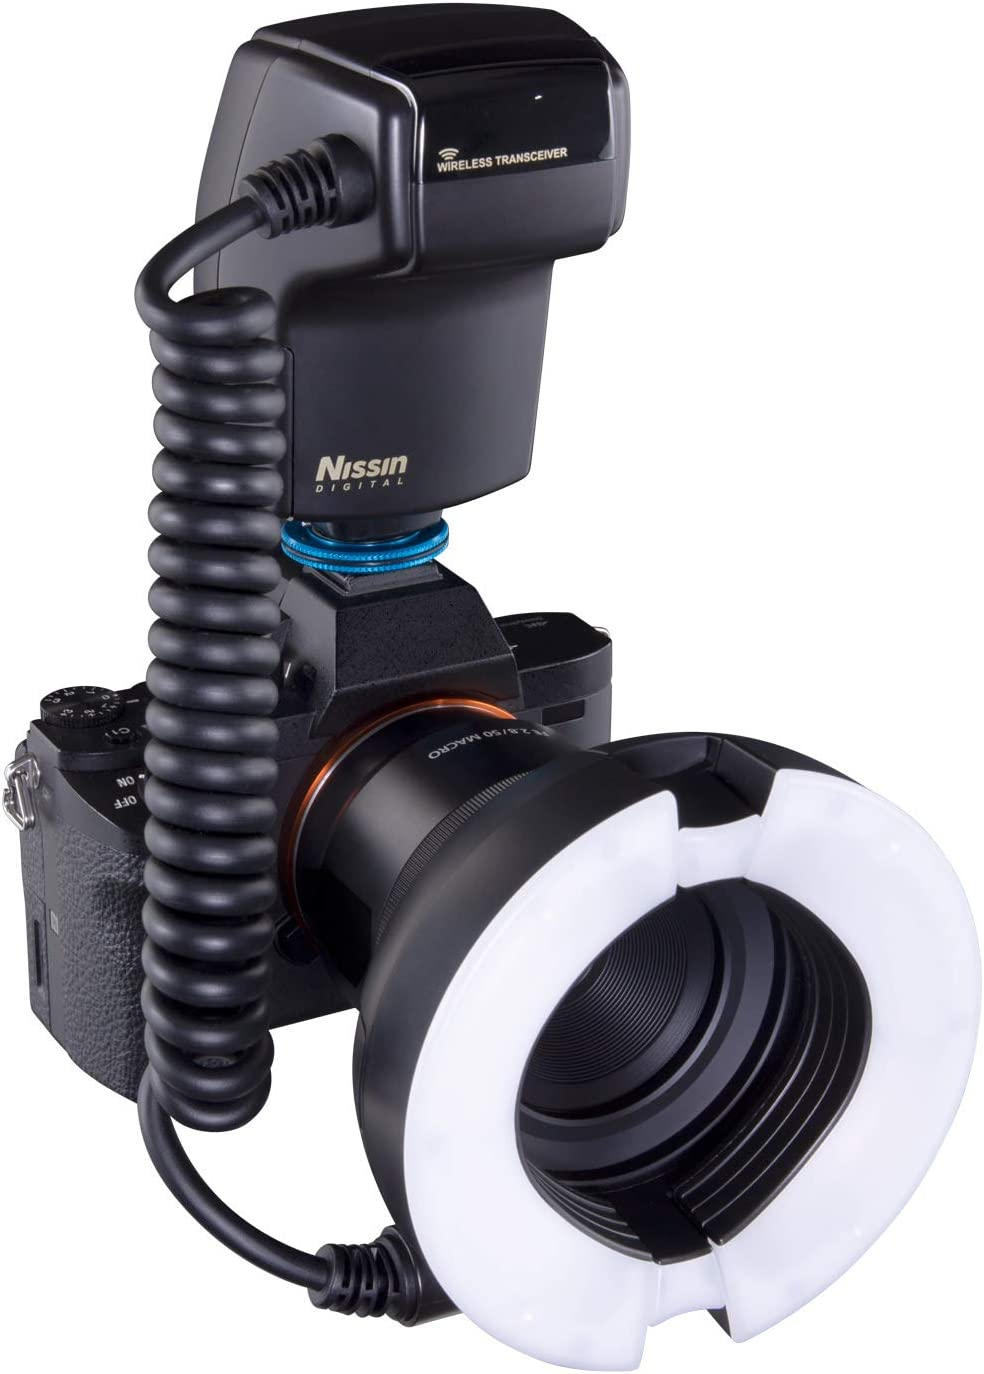 Nissin Macro Ring Flash Mf 18 For Sony Ttl Flash With Soft Diffuse Light And Precise Control For Professional Macro Photography Manual 1 1 To 1 1024 High Speed Sync Hss User Friendly Controls Camera Photo Amazon Com